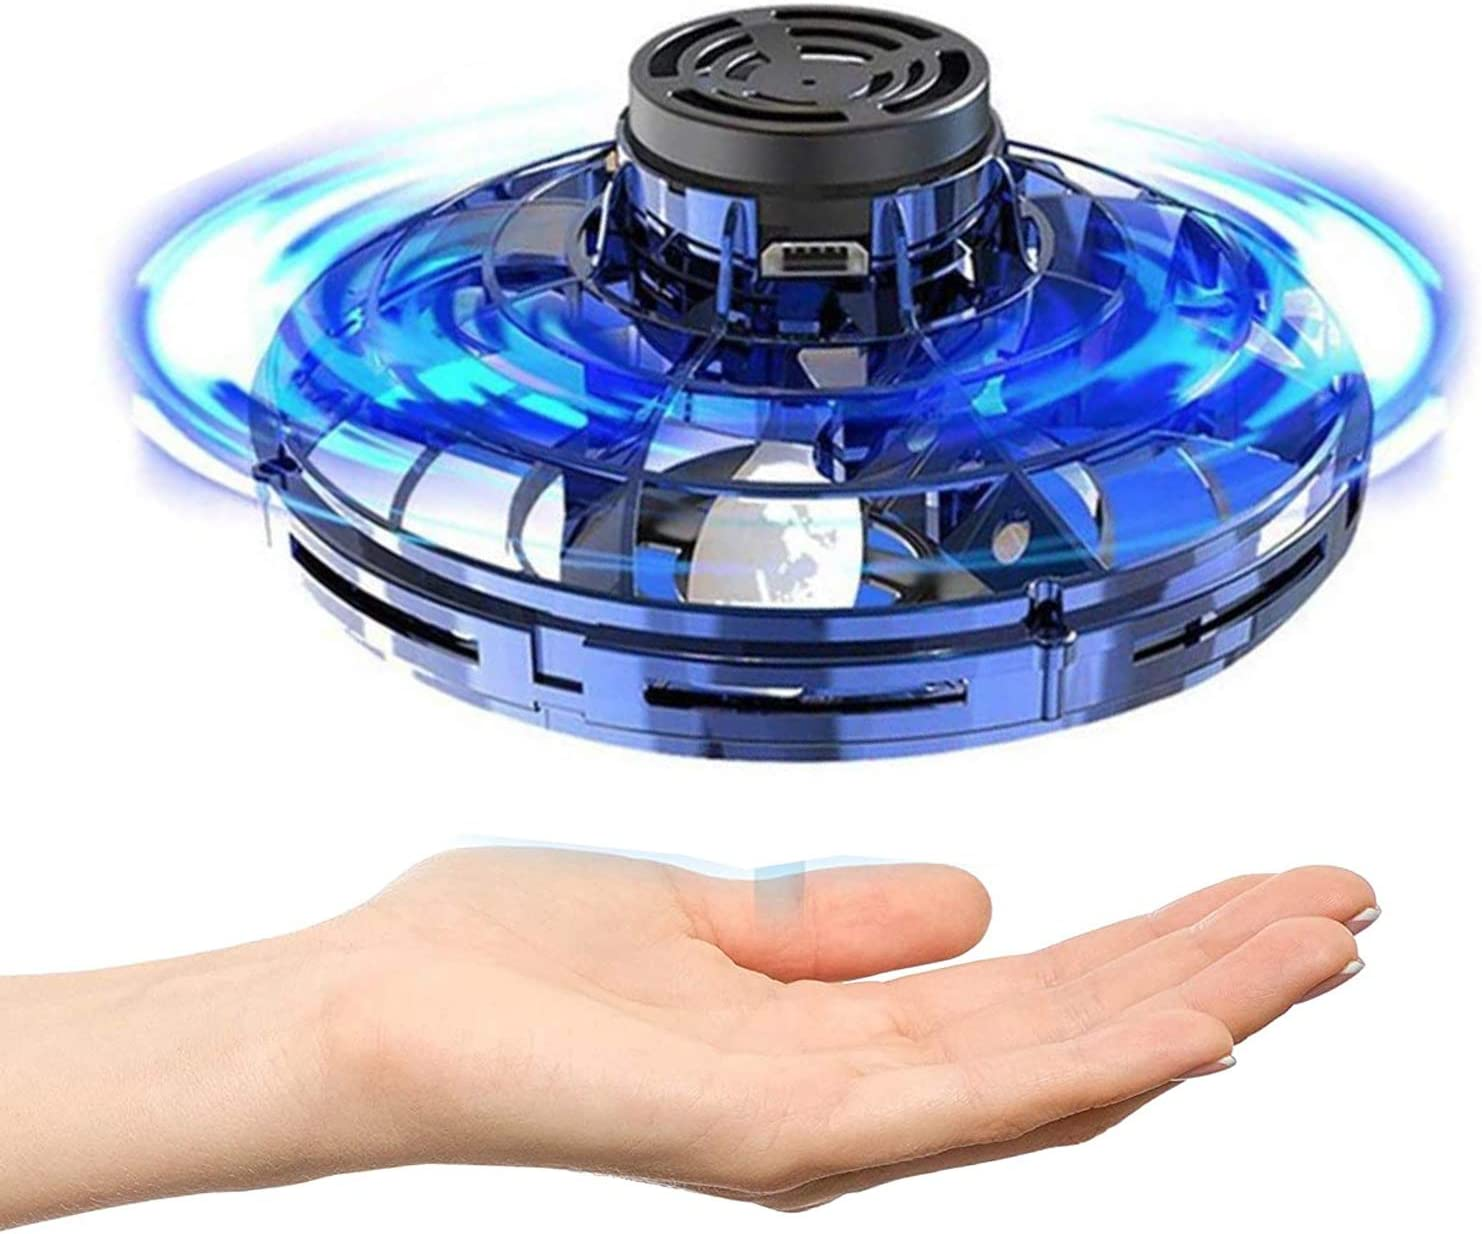 Flying Ball Spinner Hand Operated Drone for Kids Hawiton Flynova Pro Flying Toys Flying Boomerang Spinner with Endless Tricks 360/°Rotating /& LED Lights Helicopter Stress Relief Toys for Boys Gift